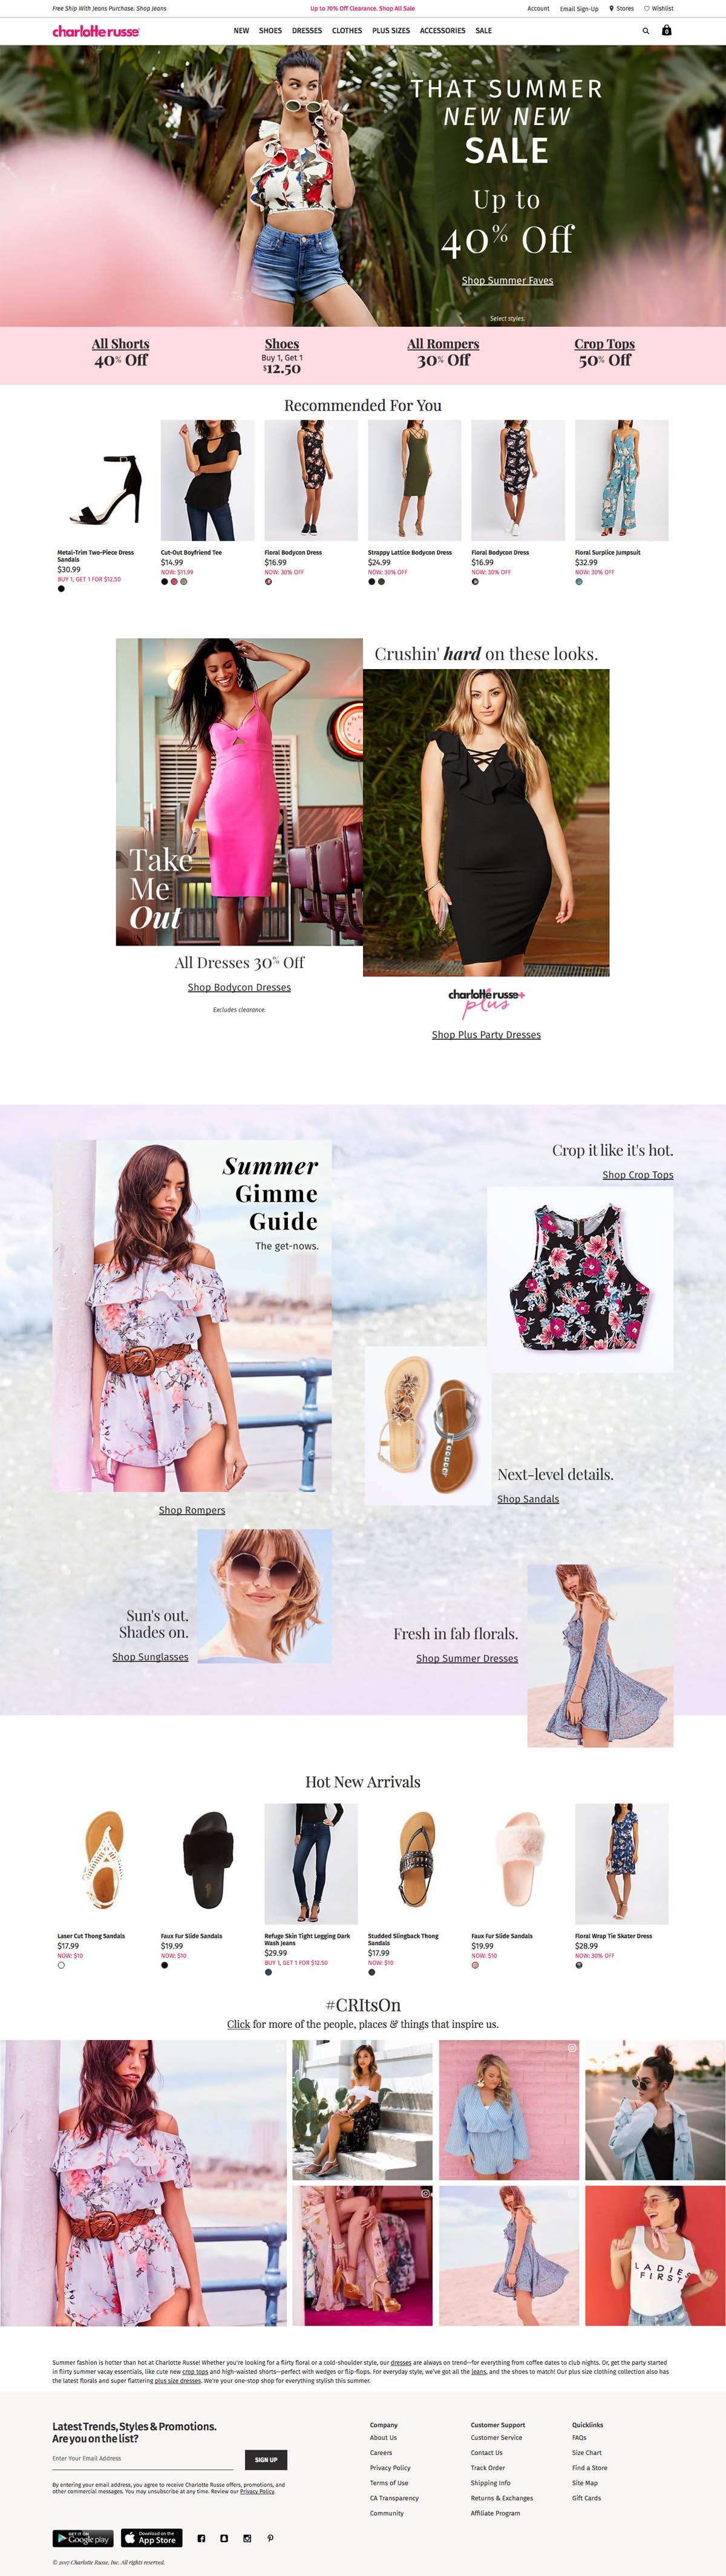 eCommerce website: Charlotte Russe